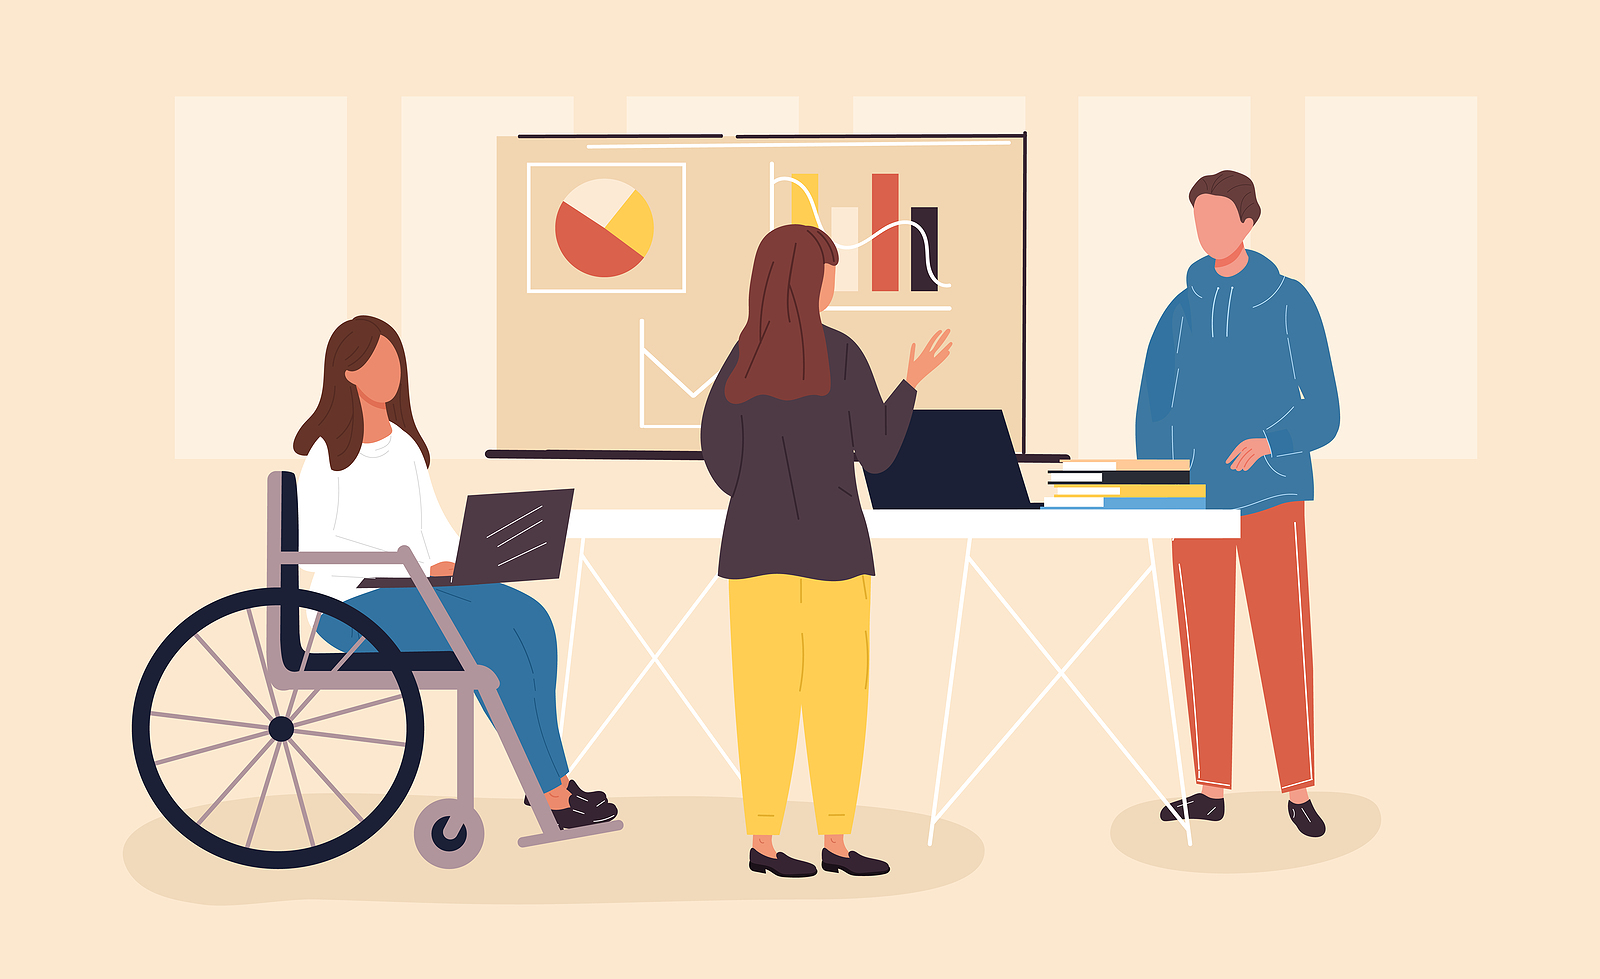 All You Need to Know About Inclusive Design